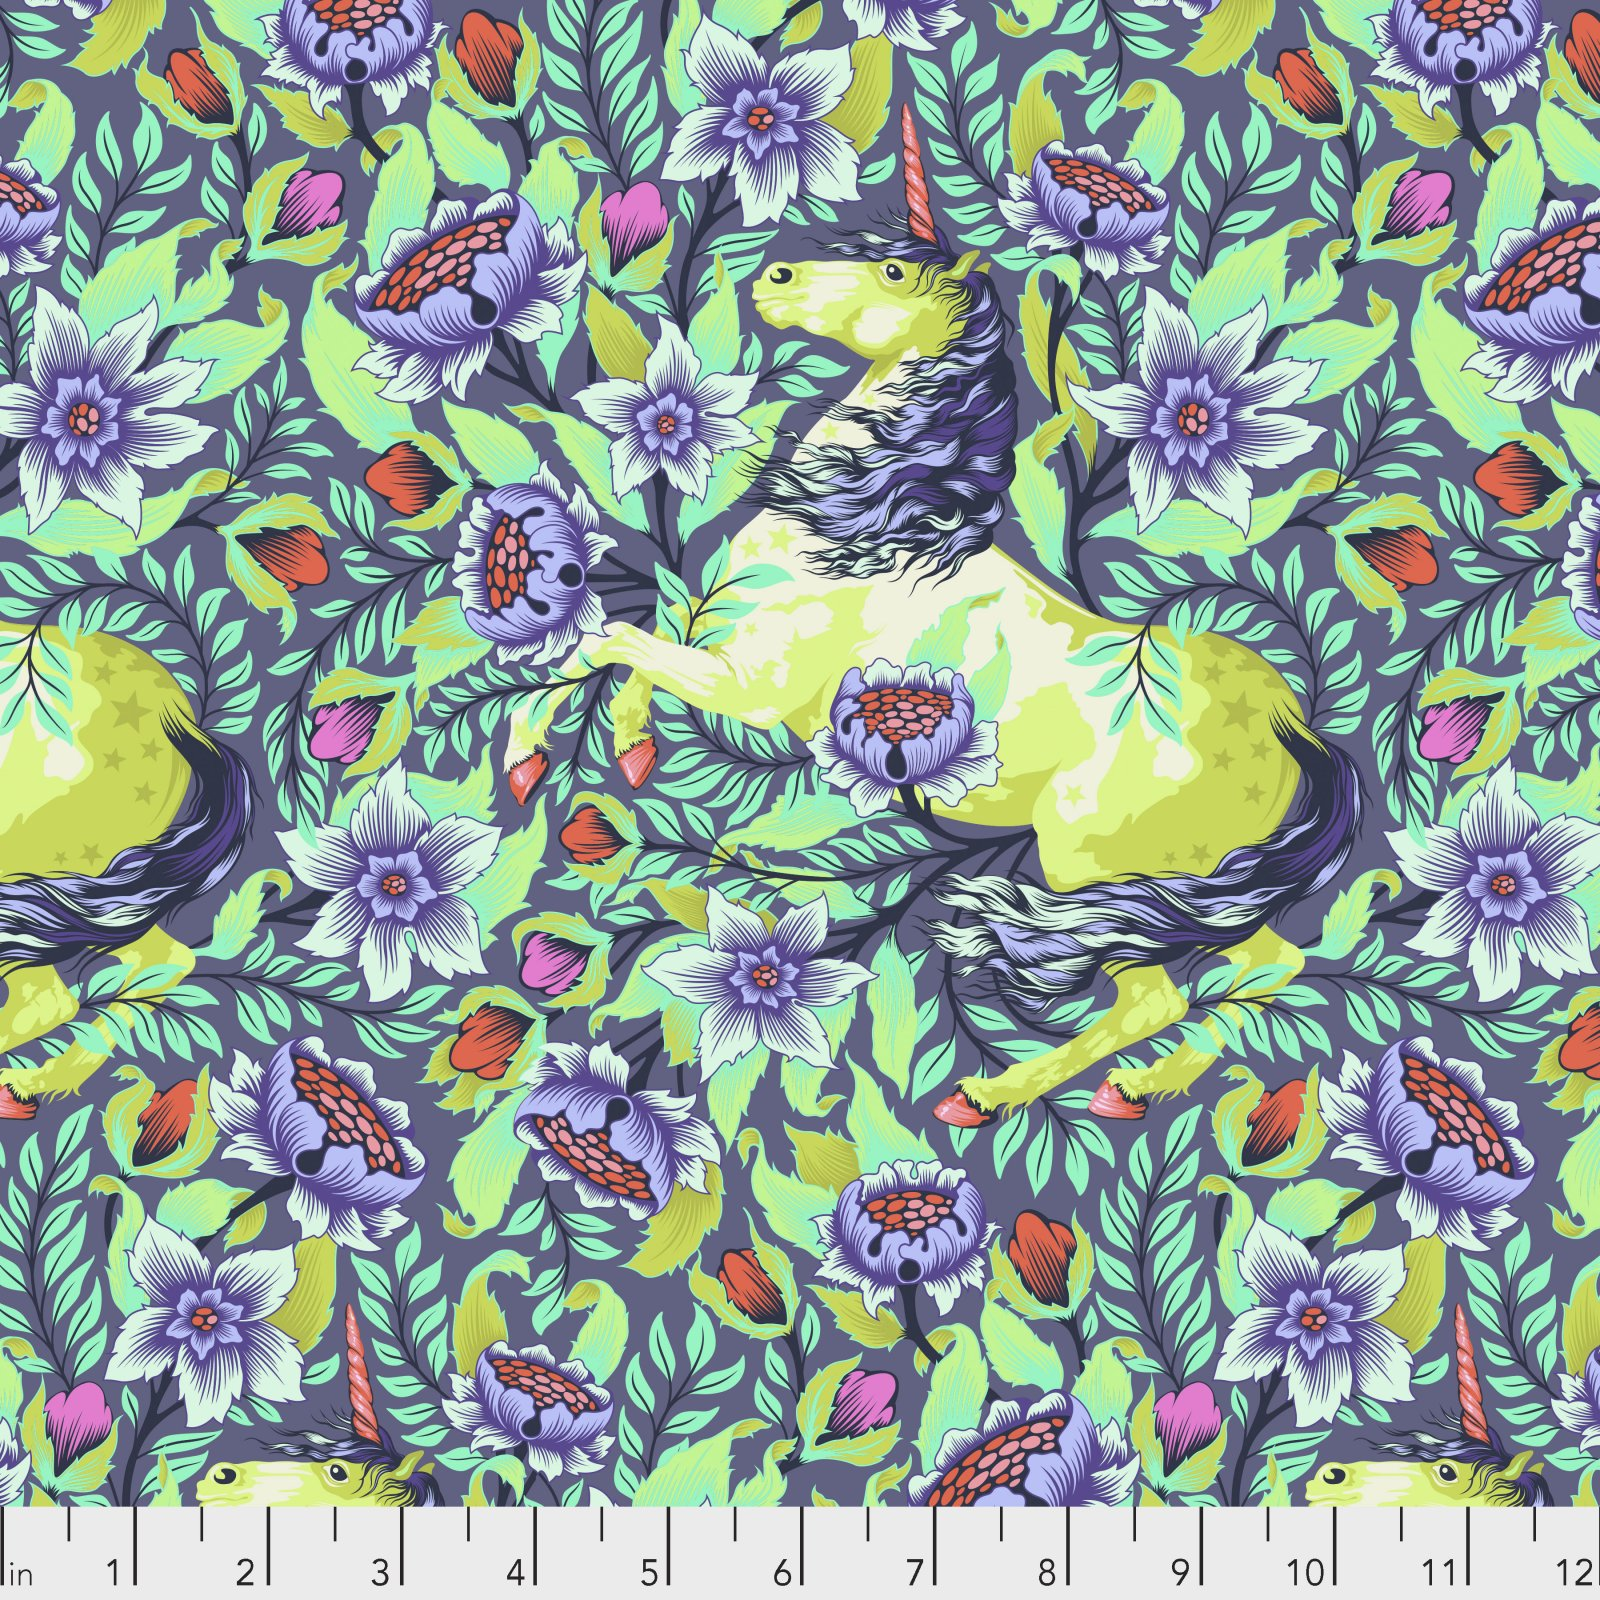 Daydream Imaginarium 1/3 YARD PWTP127.DAYDREAM Pinkerville by Tula Pink